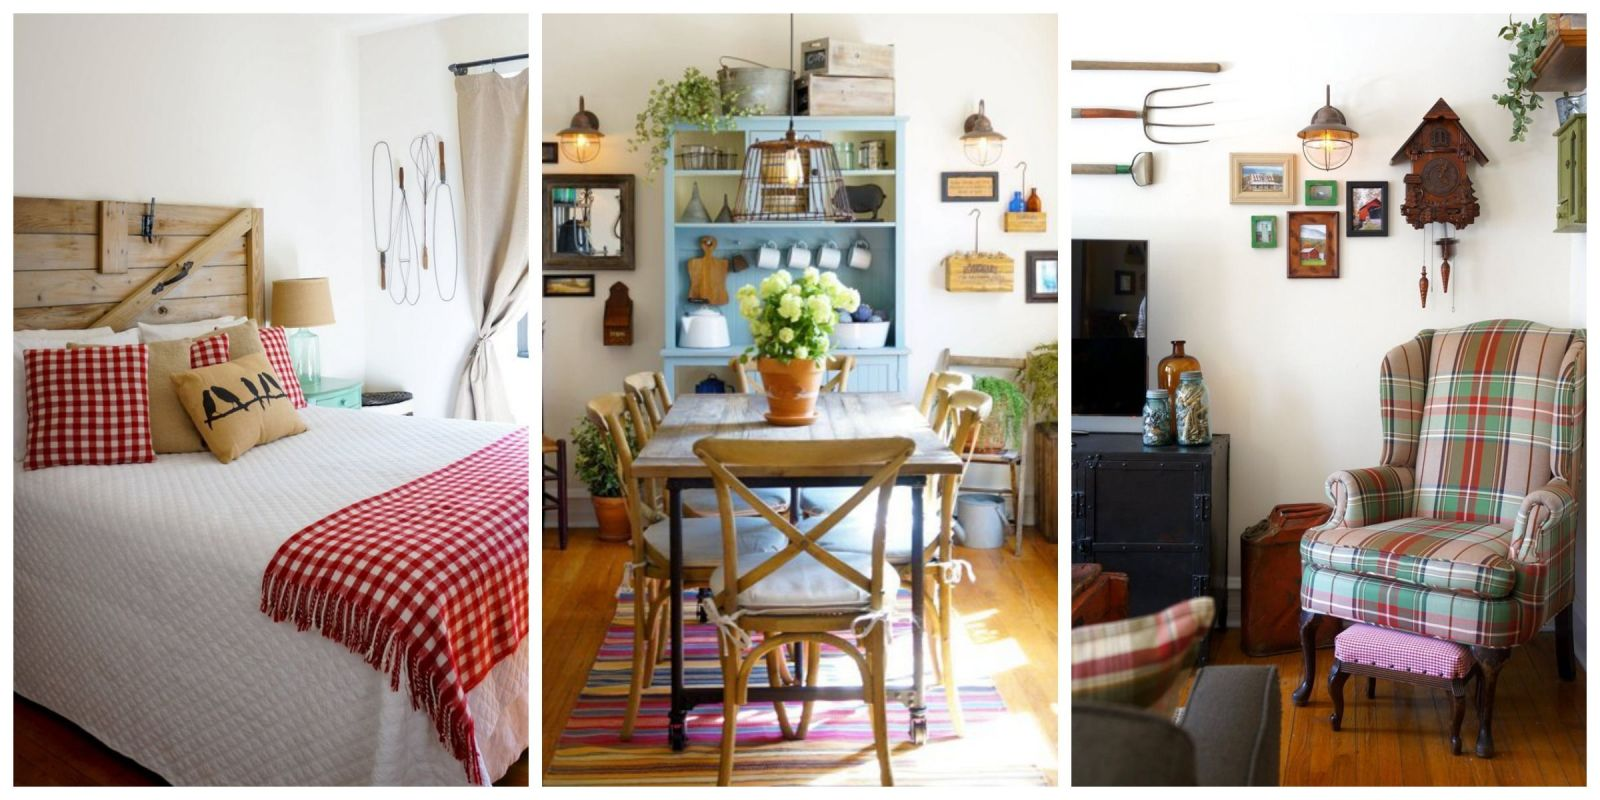 We're Crushing On The Primitive Country Decor In This City